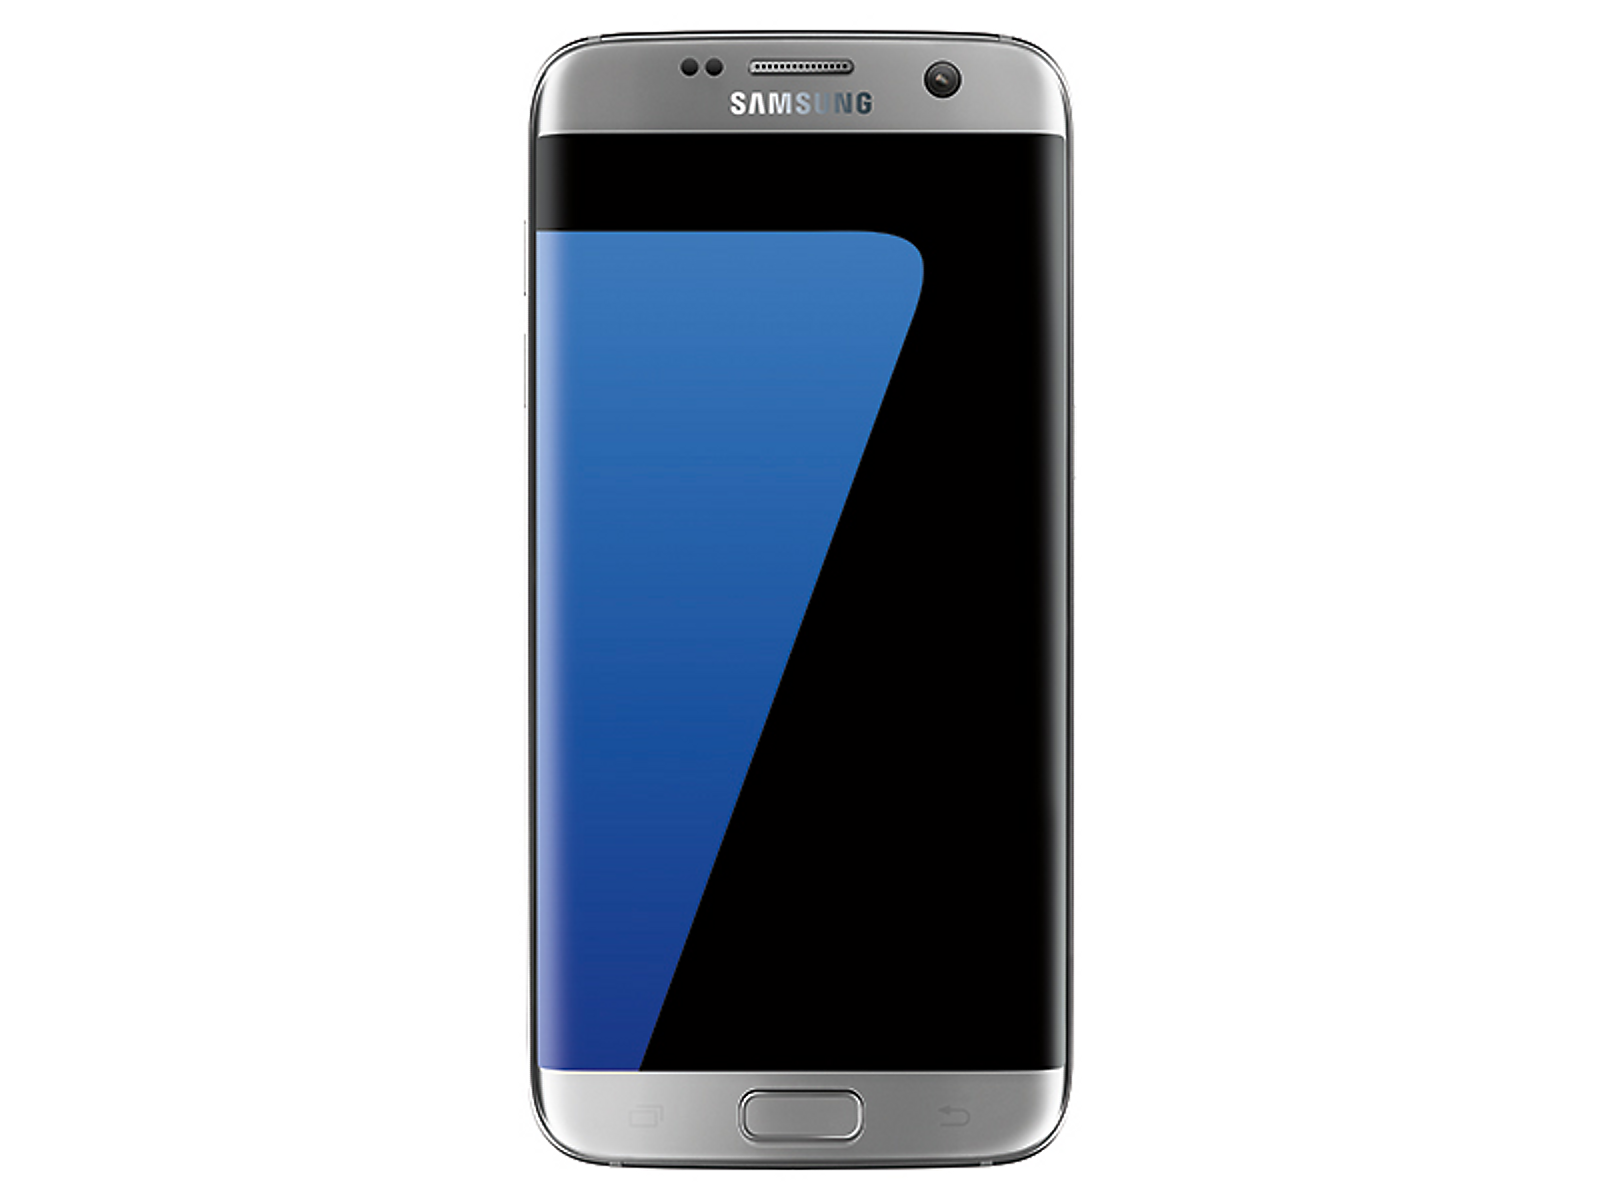 Samsung galaxy s7 png. S edge smartphone android